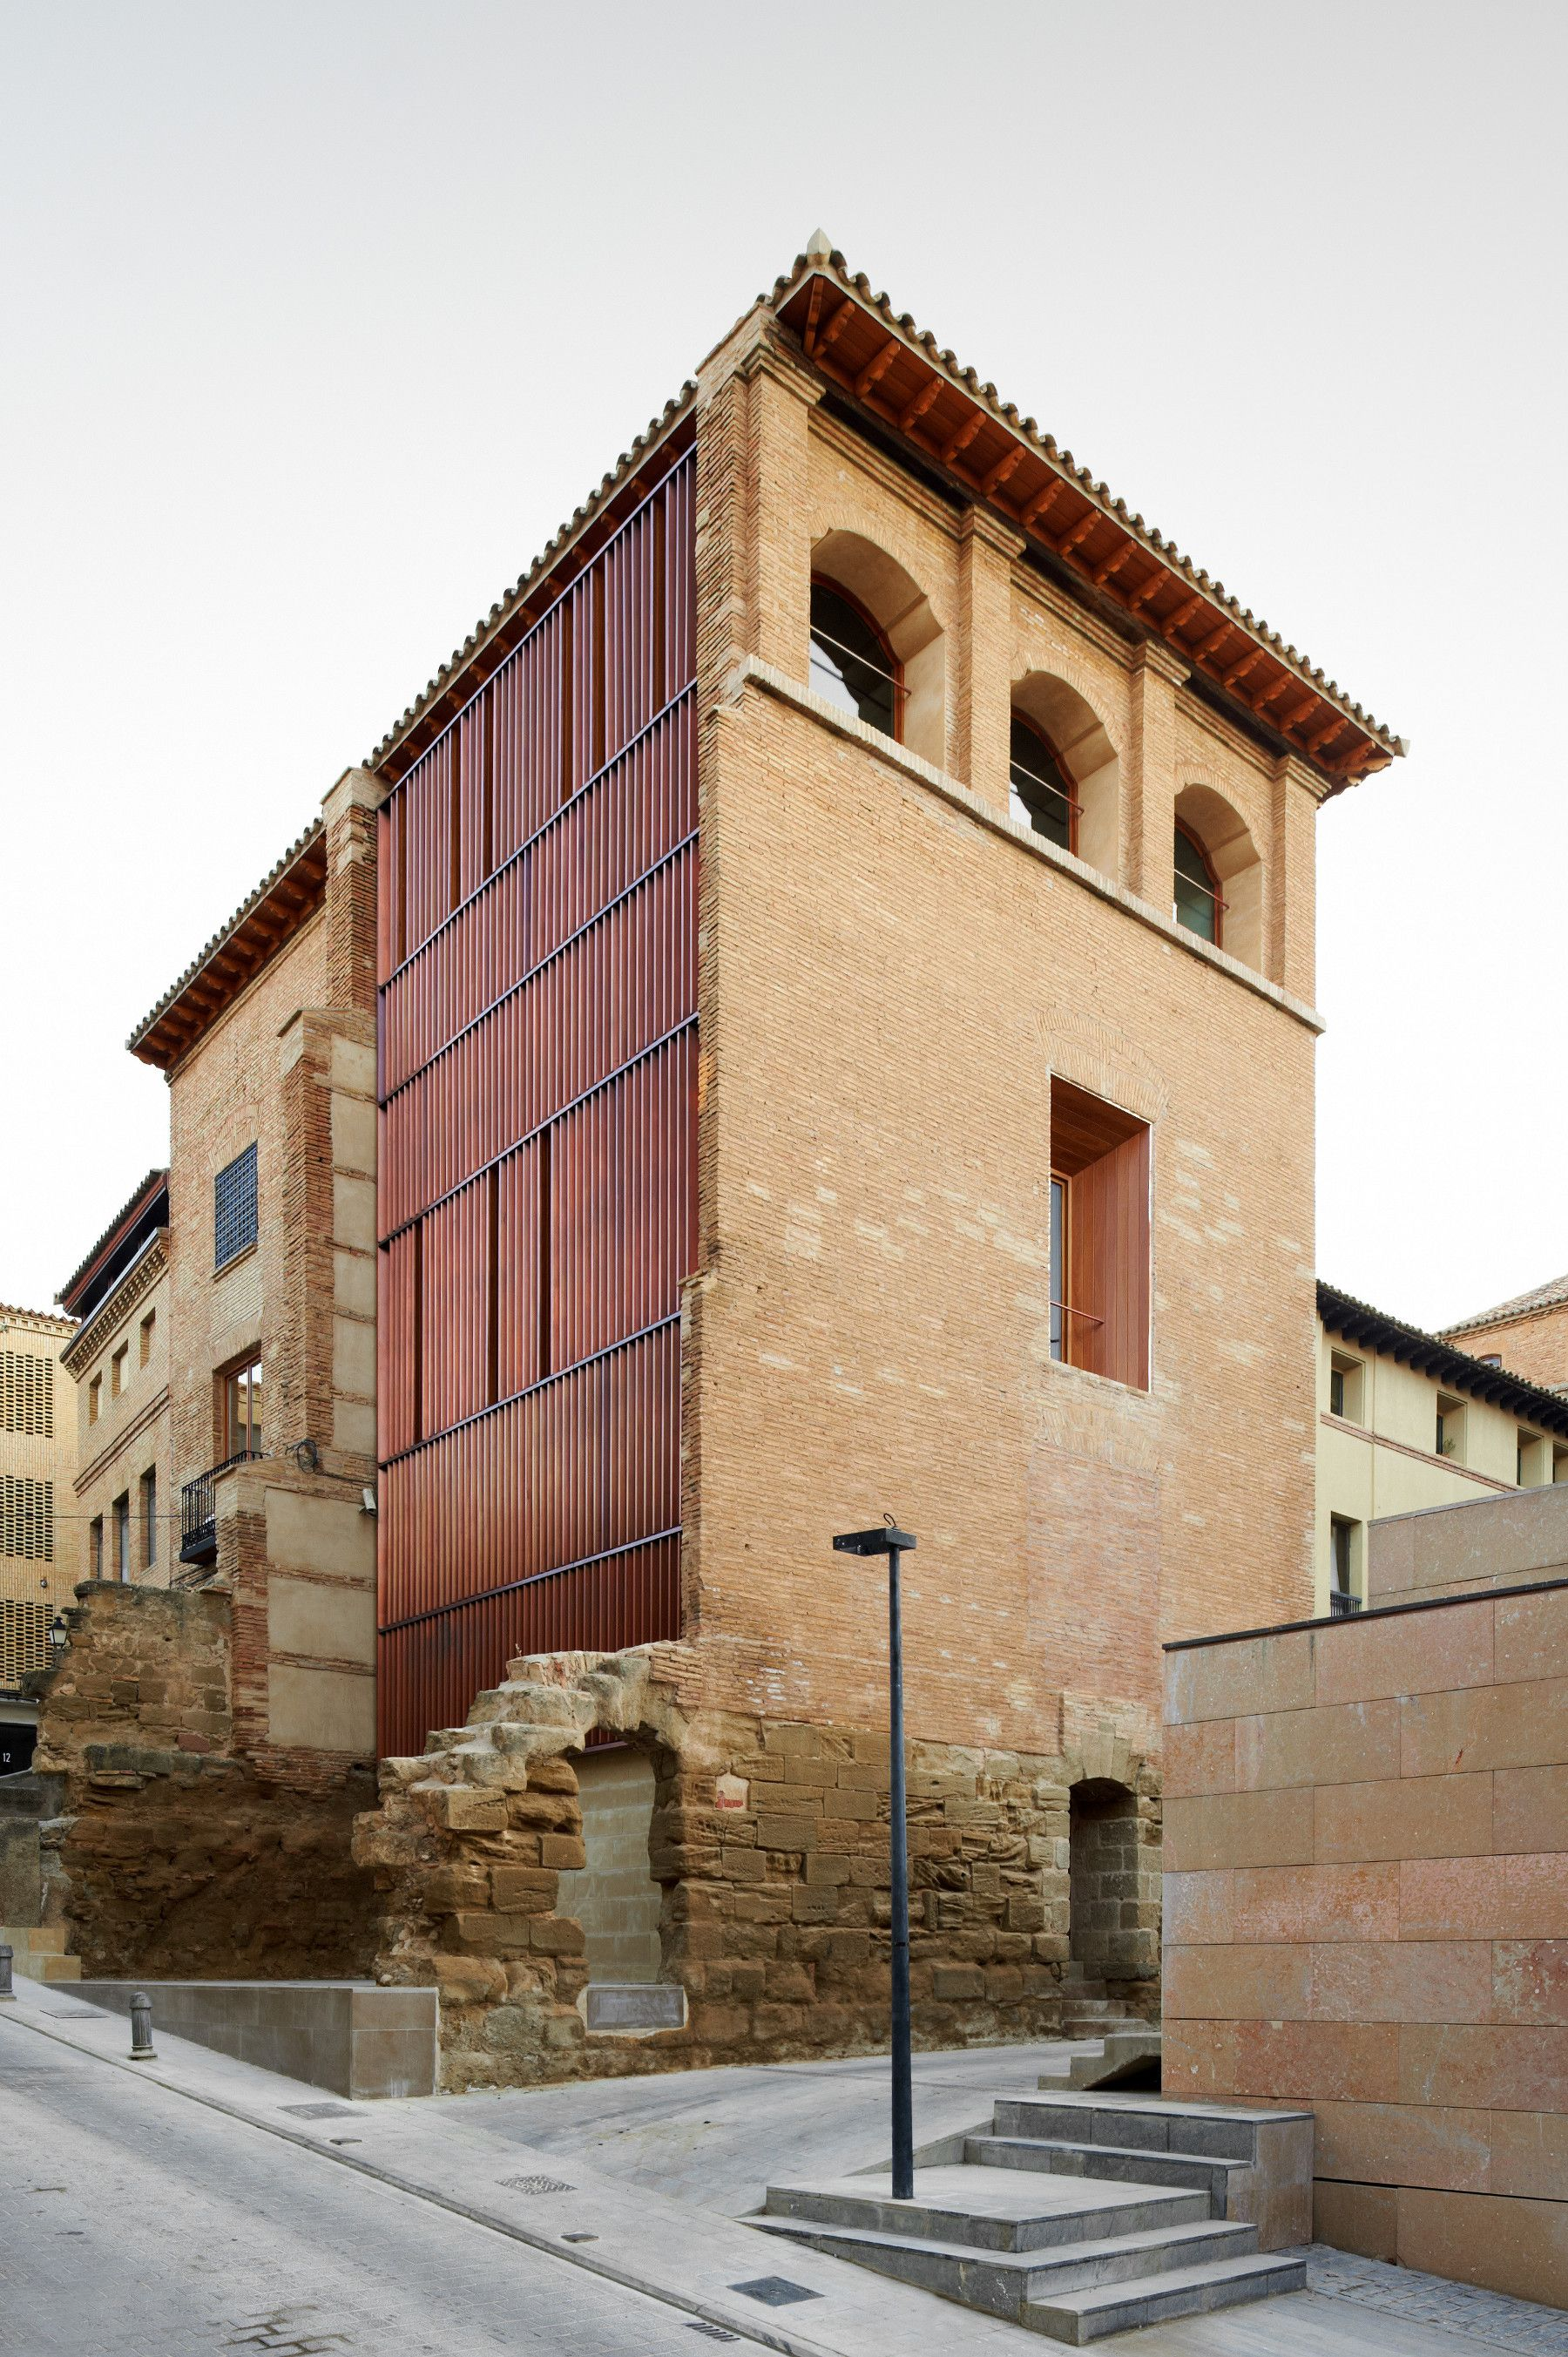 Refurbishment of the West Tower in Huesca City Hall, Spain